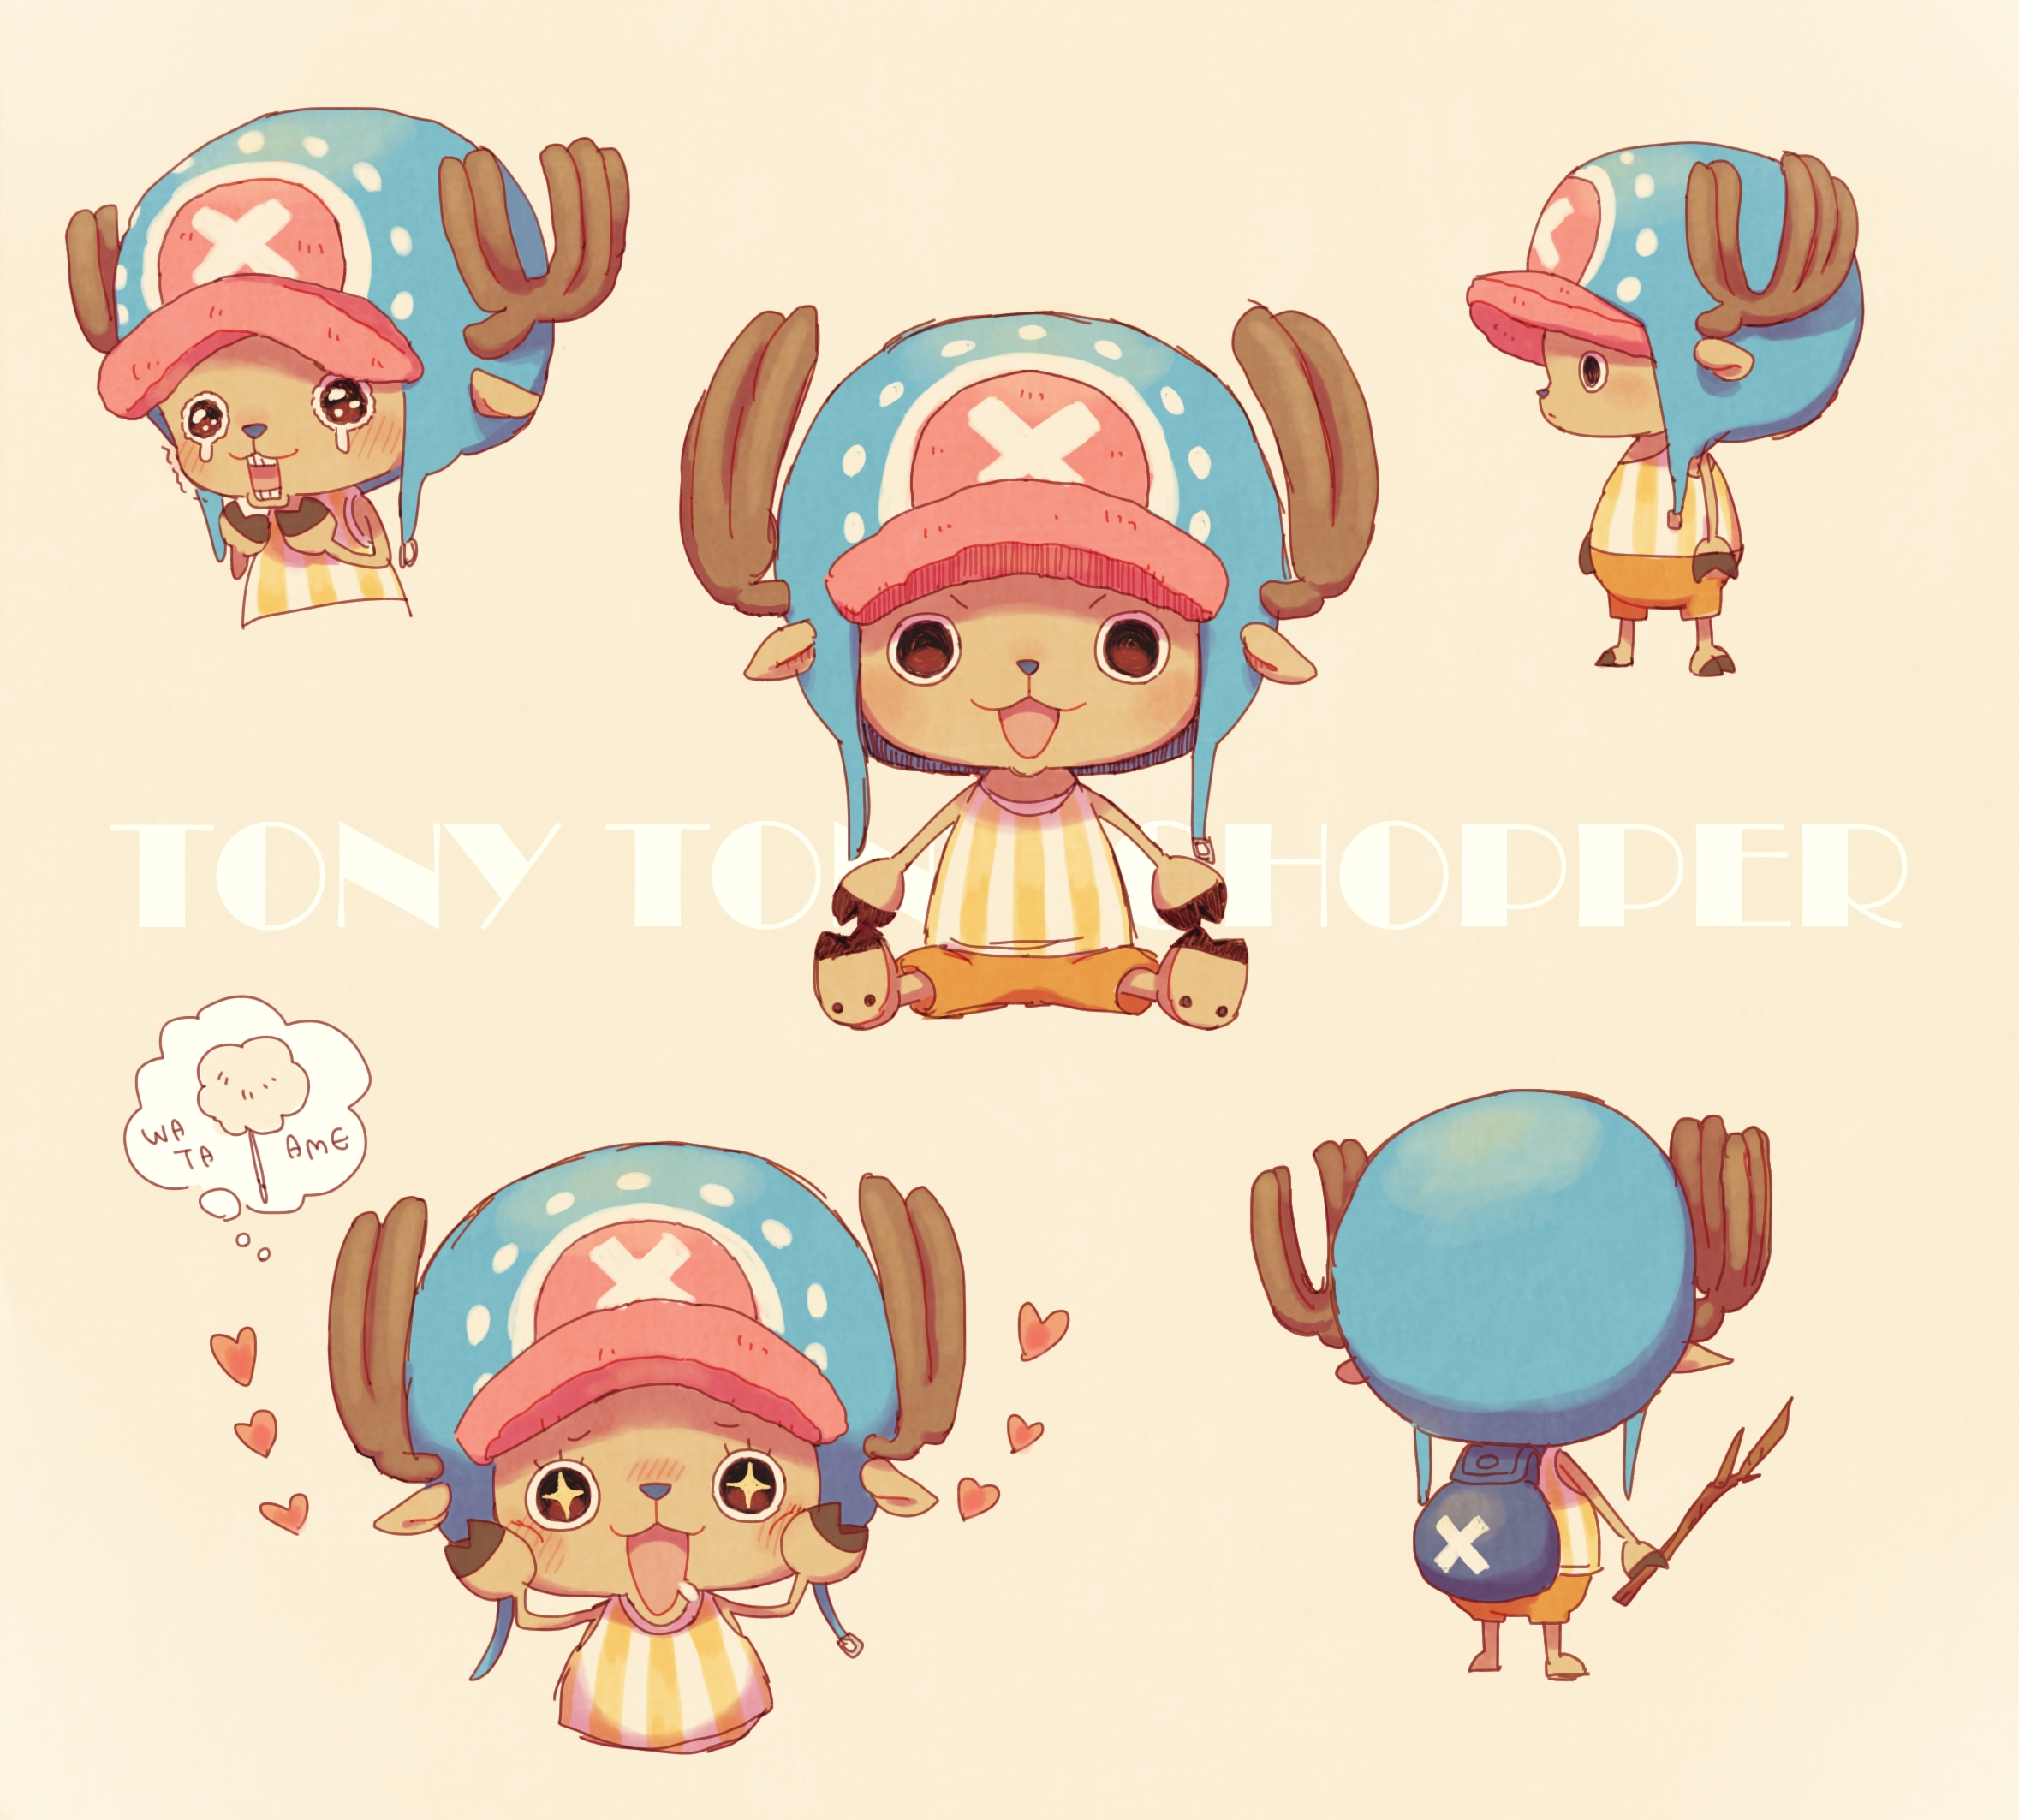 Chopper Wallpaper Chopper Wallpaper Chibi Chopper One Piece 3093927 Hd Wallpaper Backgrounds Download